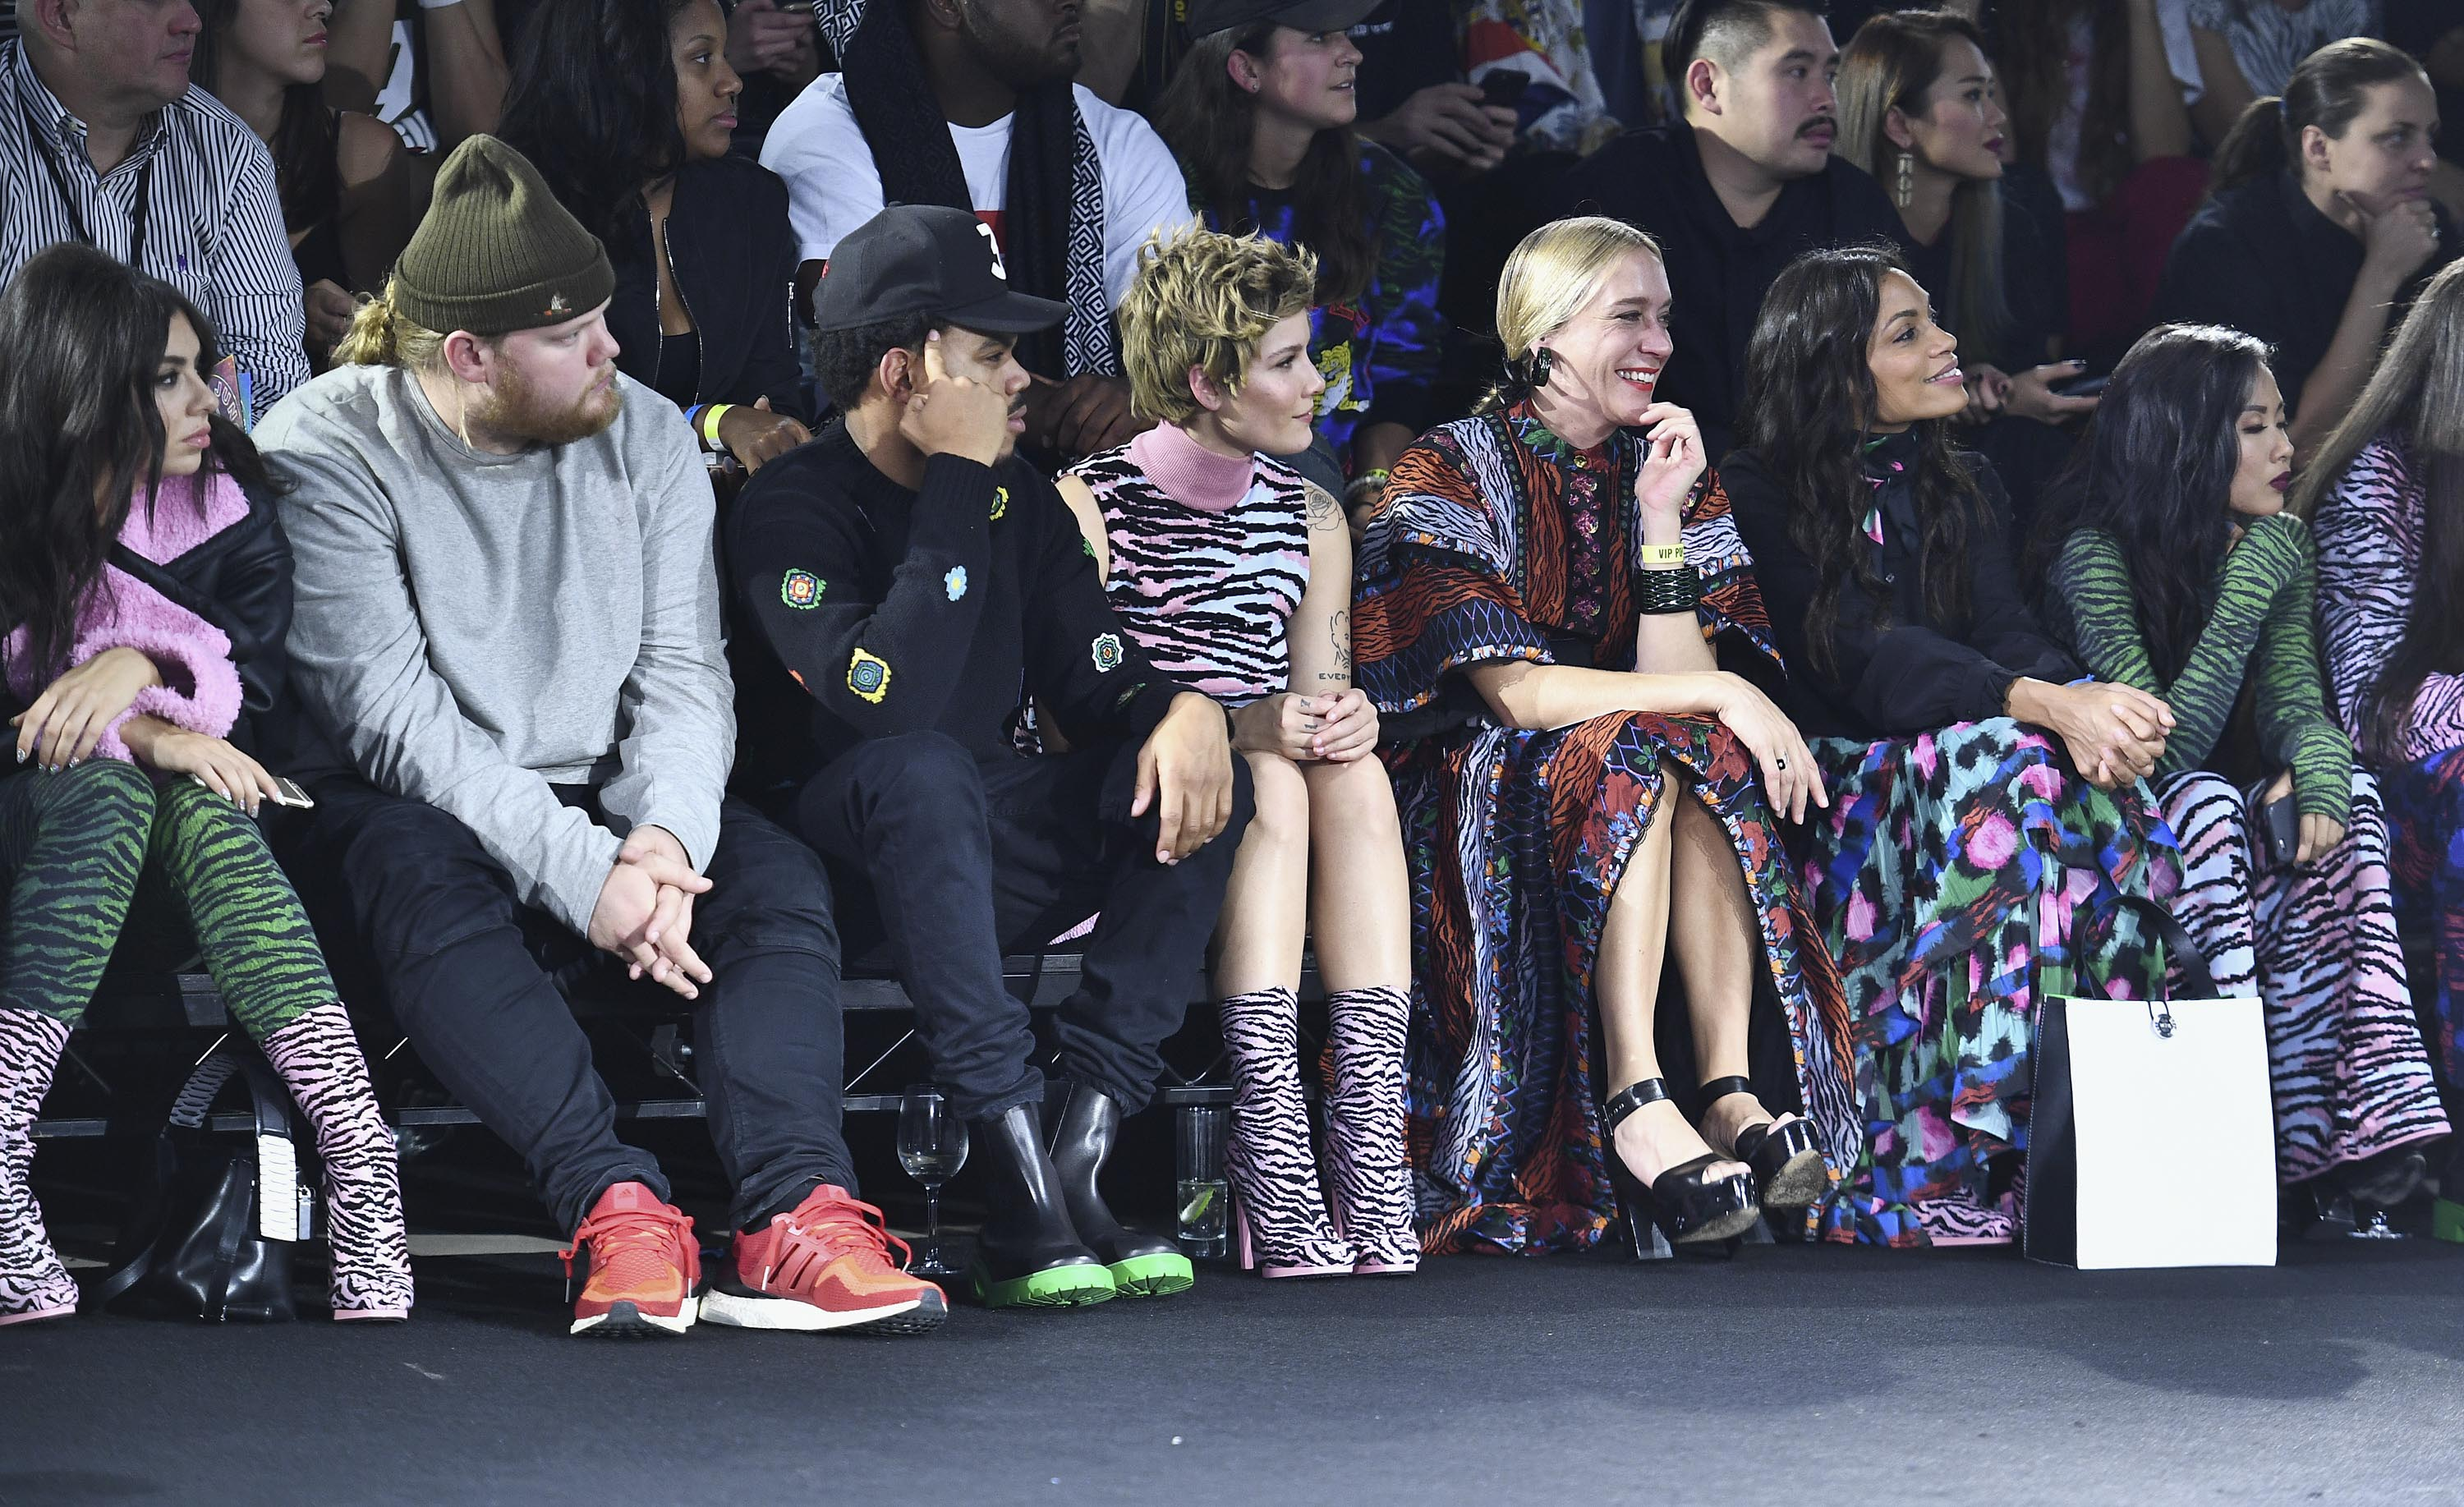 kenzo-x-hm-nyc-event-charli-xcx-chance-the-rapper-halsey-chloe-sevigny-rosario-dawson-suboi-wearing-kenzoxhm-0101